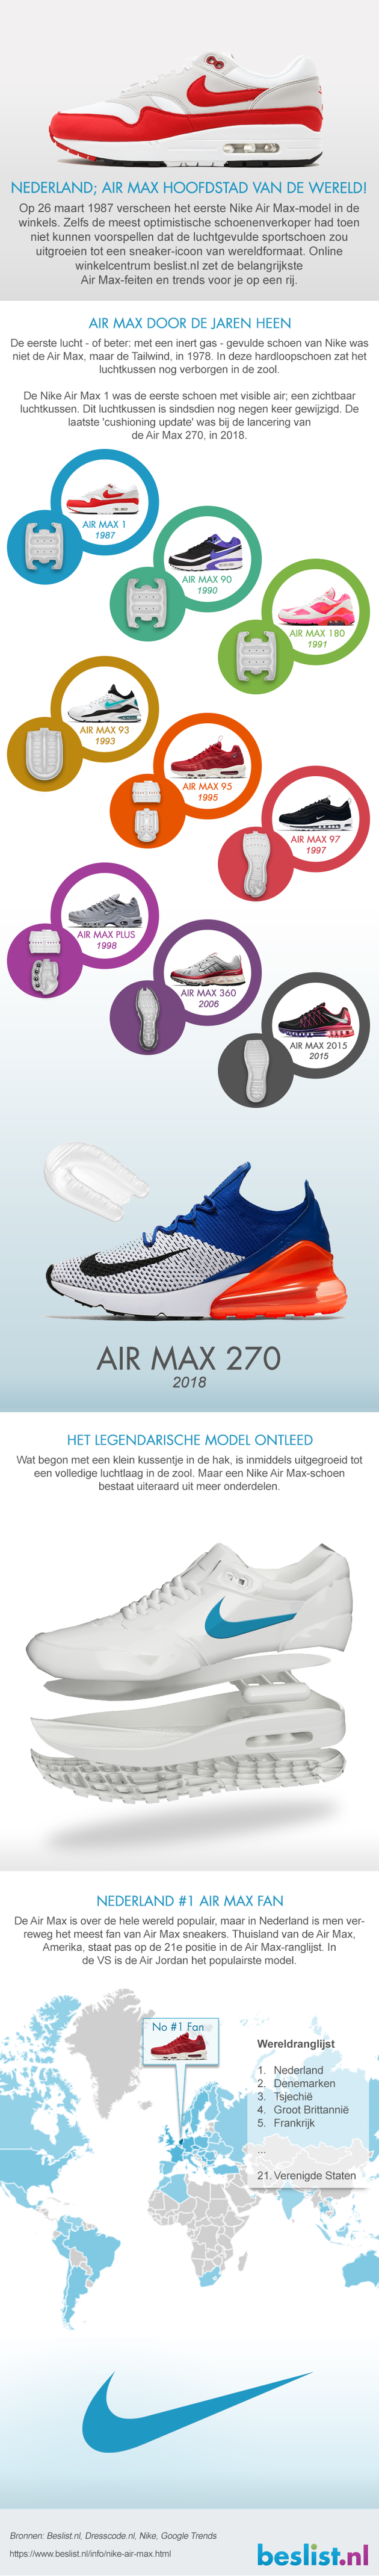 nike-air-max-world-infographic